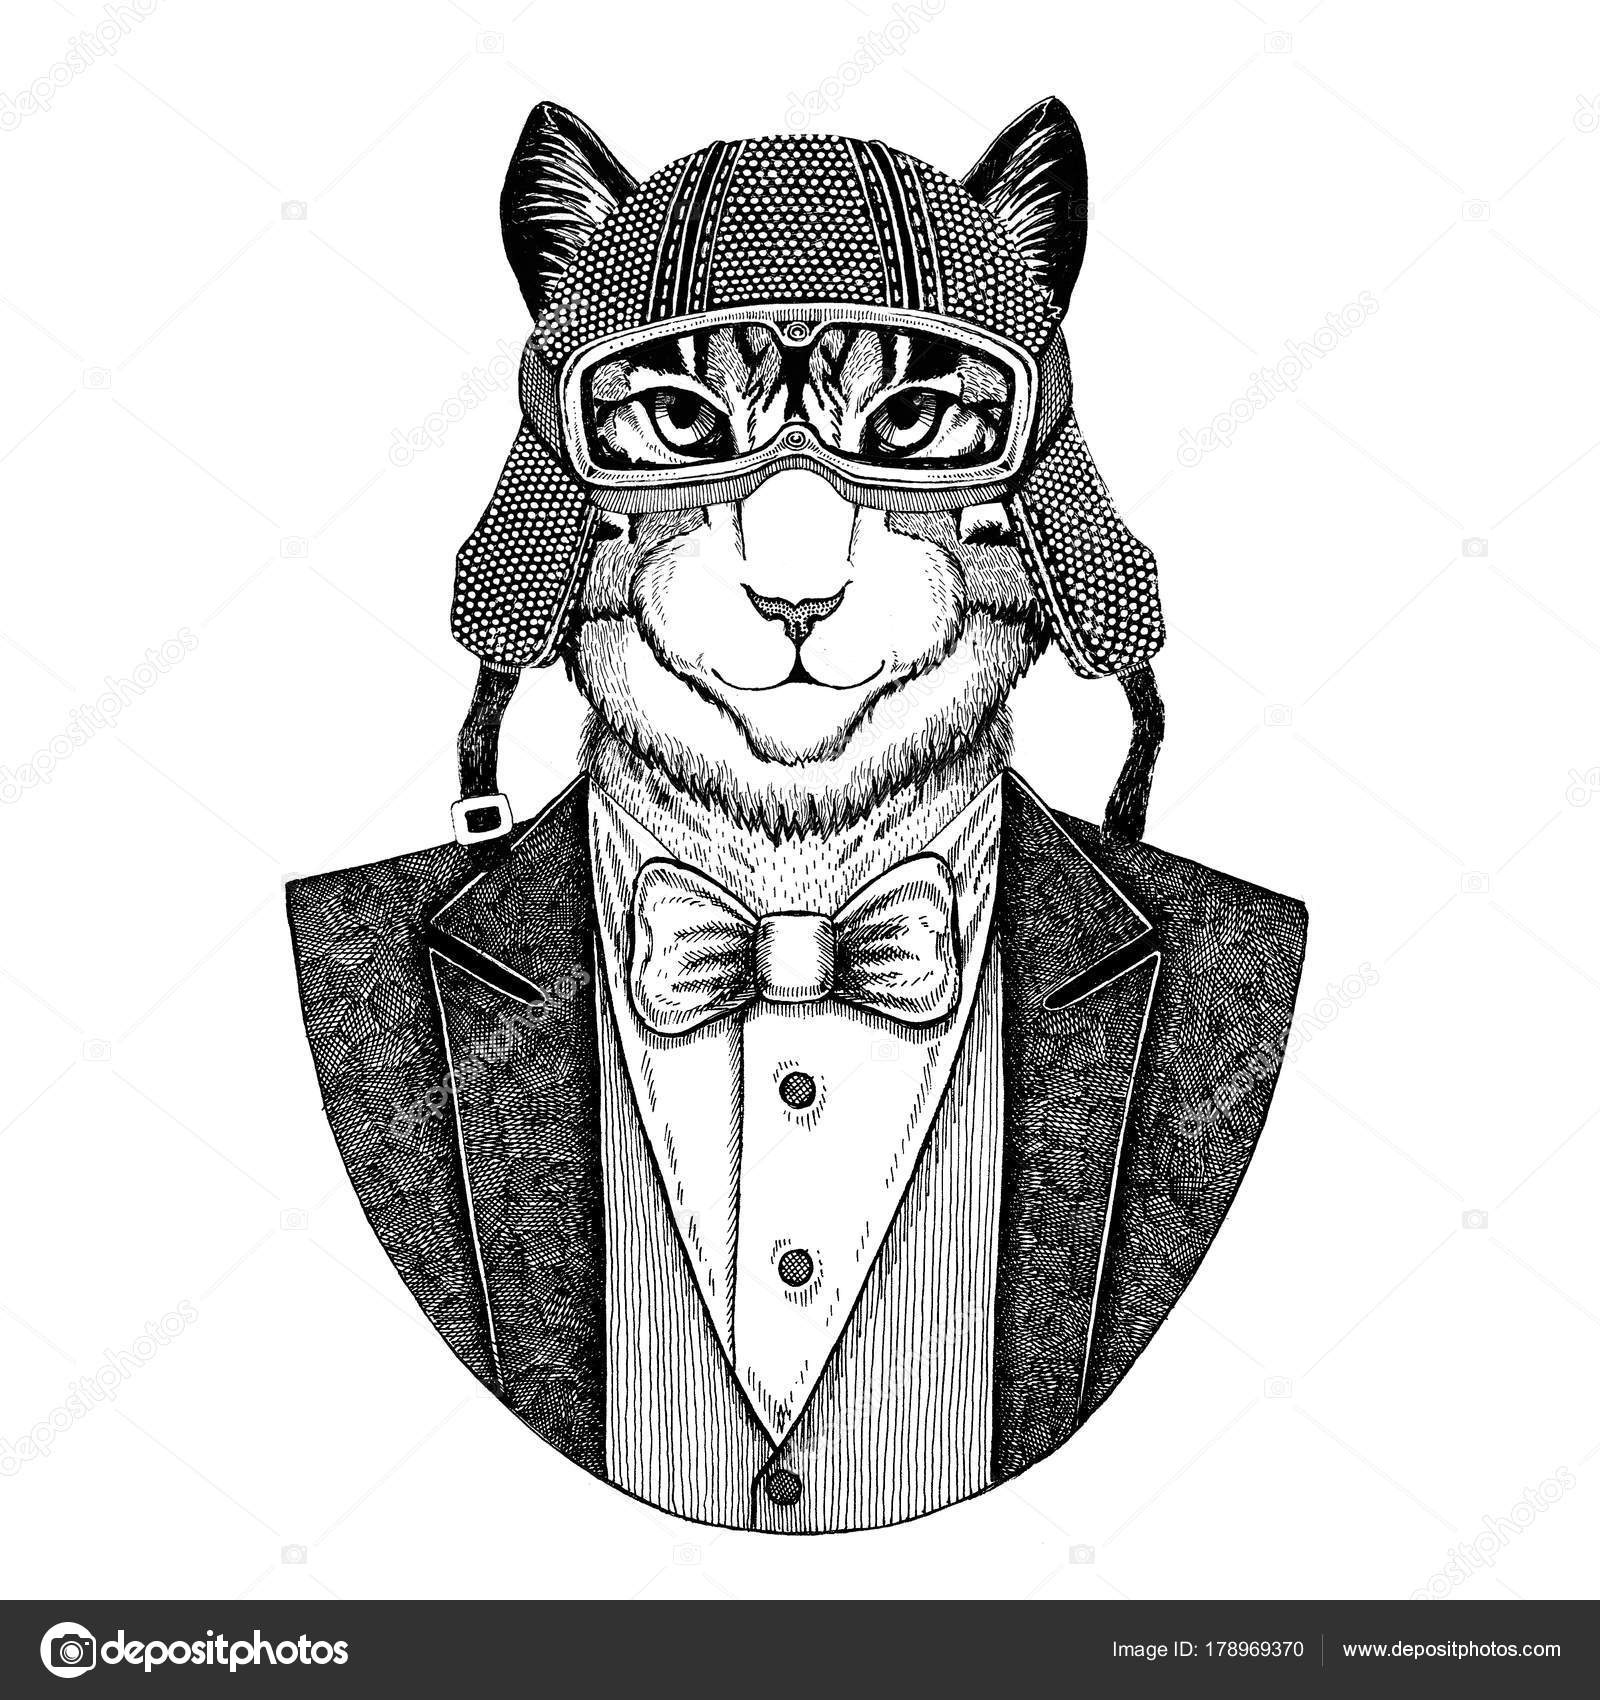 408df06dc Image of domestic cat Animal wearing jacket with bow-tie and biker helmet  or aviatior · Image of domestic cat Hand drawn illustration for tattoo ...